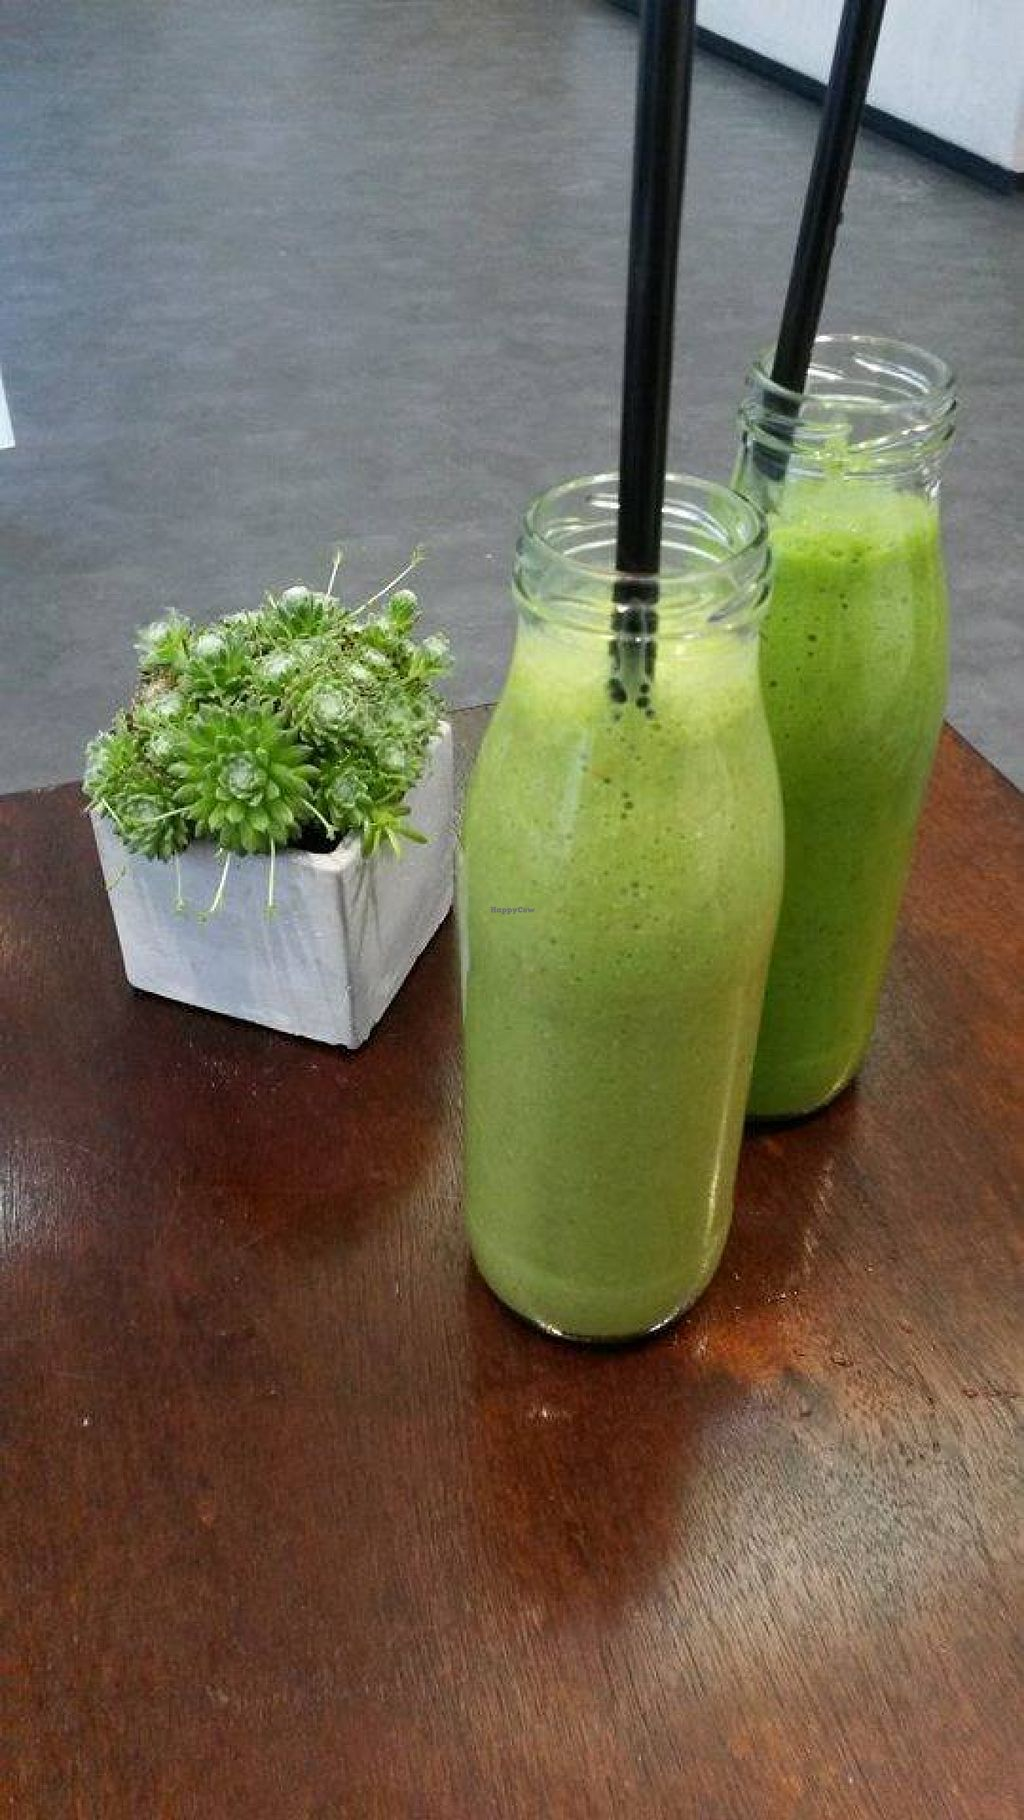 "Photo of Unter Freunden  by <a href=""/members/profile/LenaEmrich"">LenaEmrich</a> <br/>grüne Smoothies <br/> July 29, 2015  - <a href='/contact/abuse/image/58535/111459'>Report</a>"